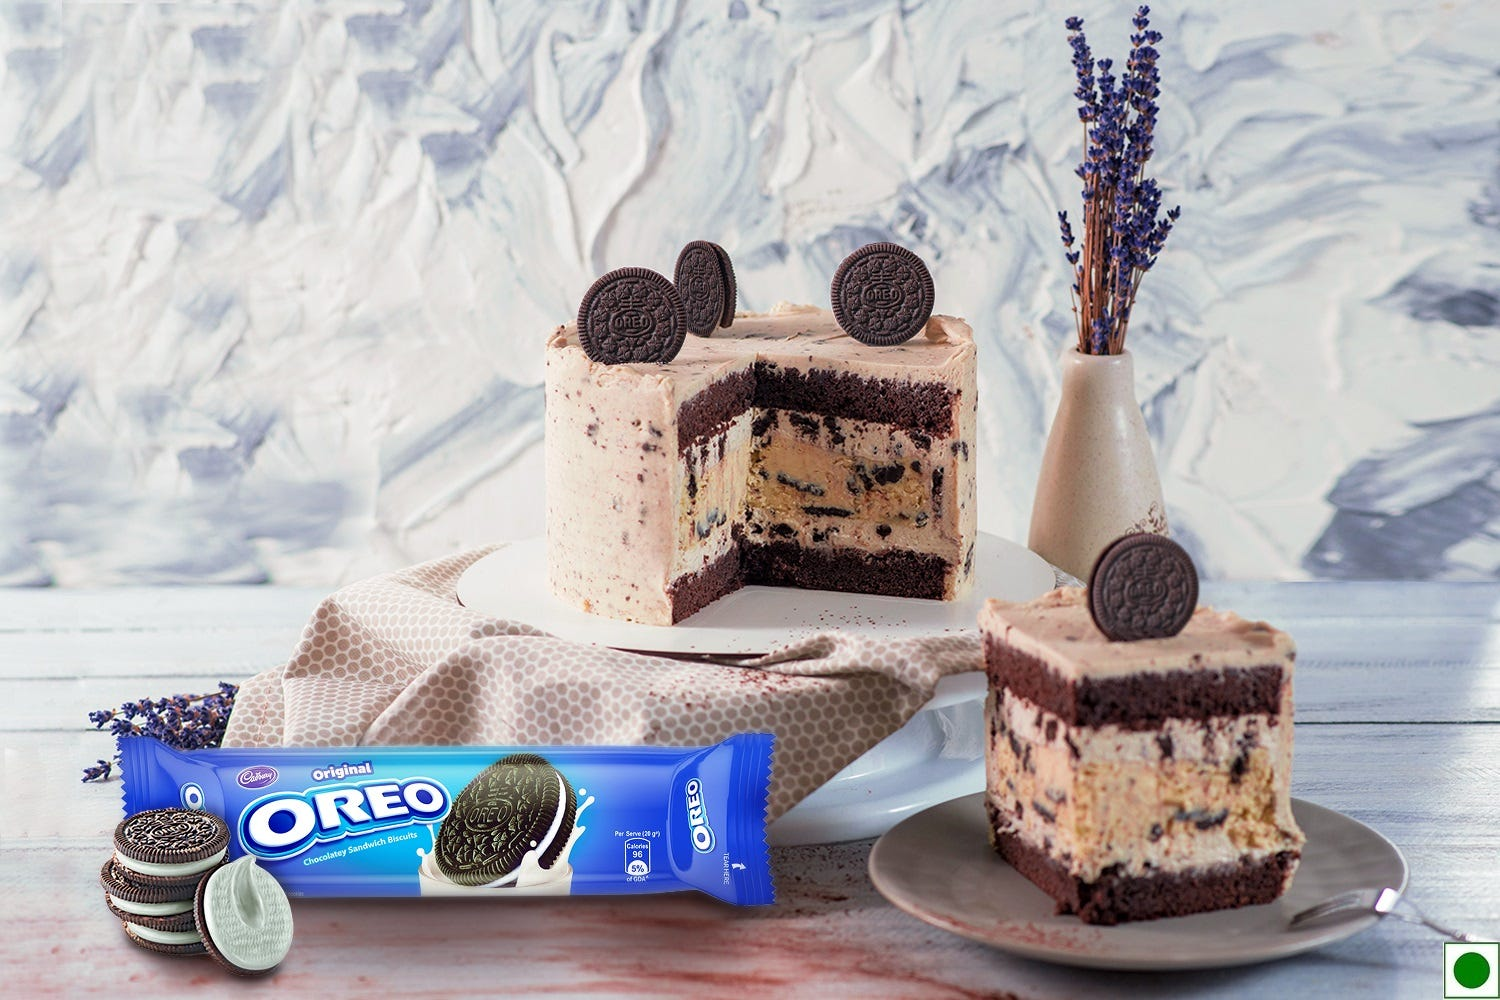 No-Bake Oreo Cheesecake Recipe for a Home Birthday Celebration